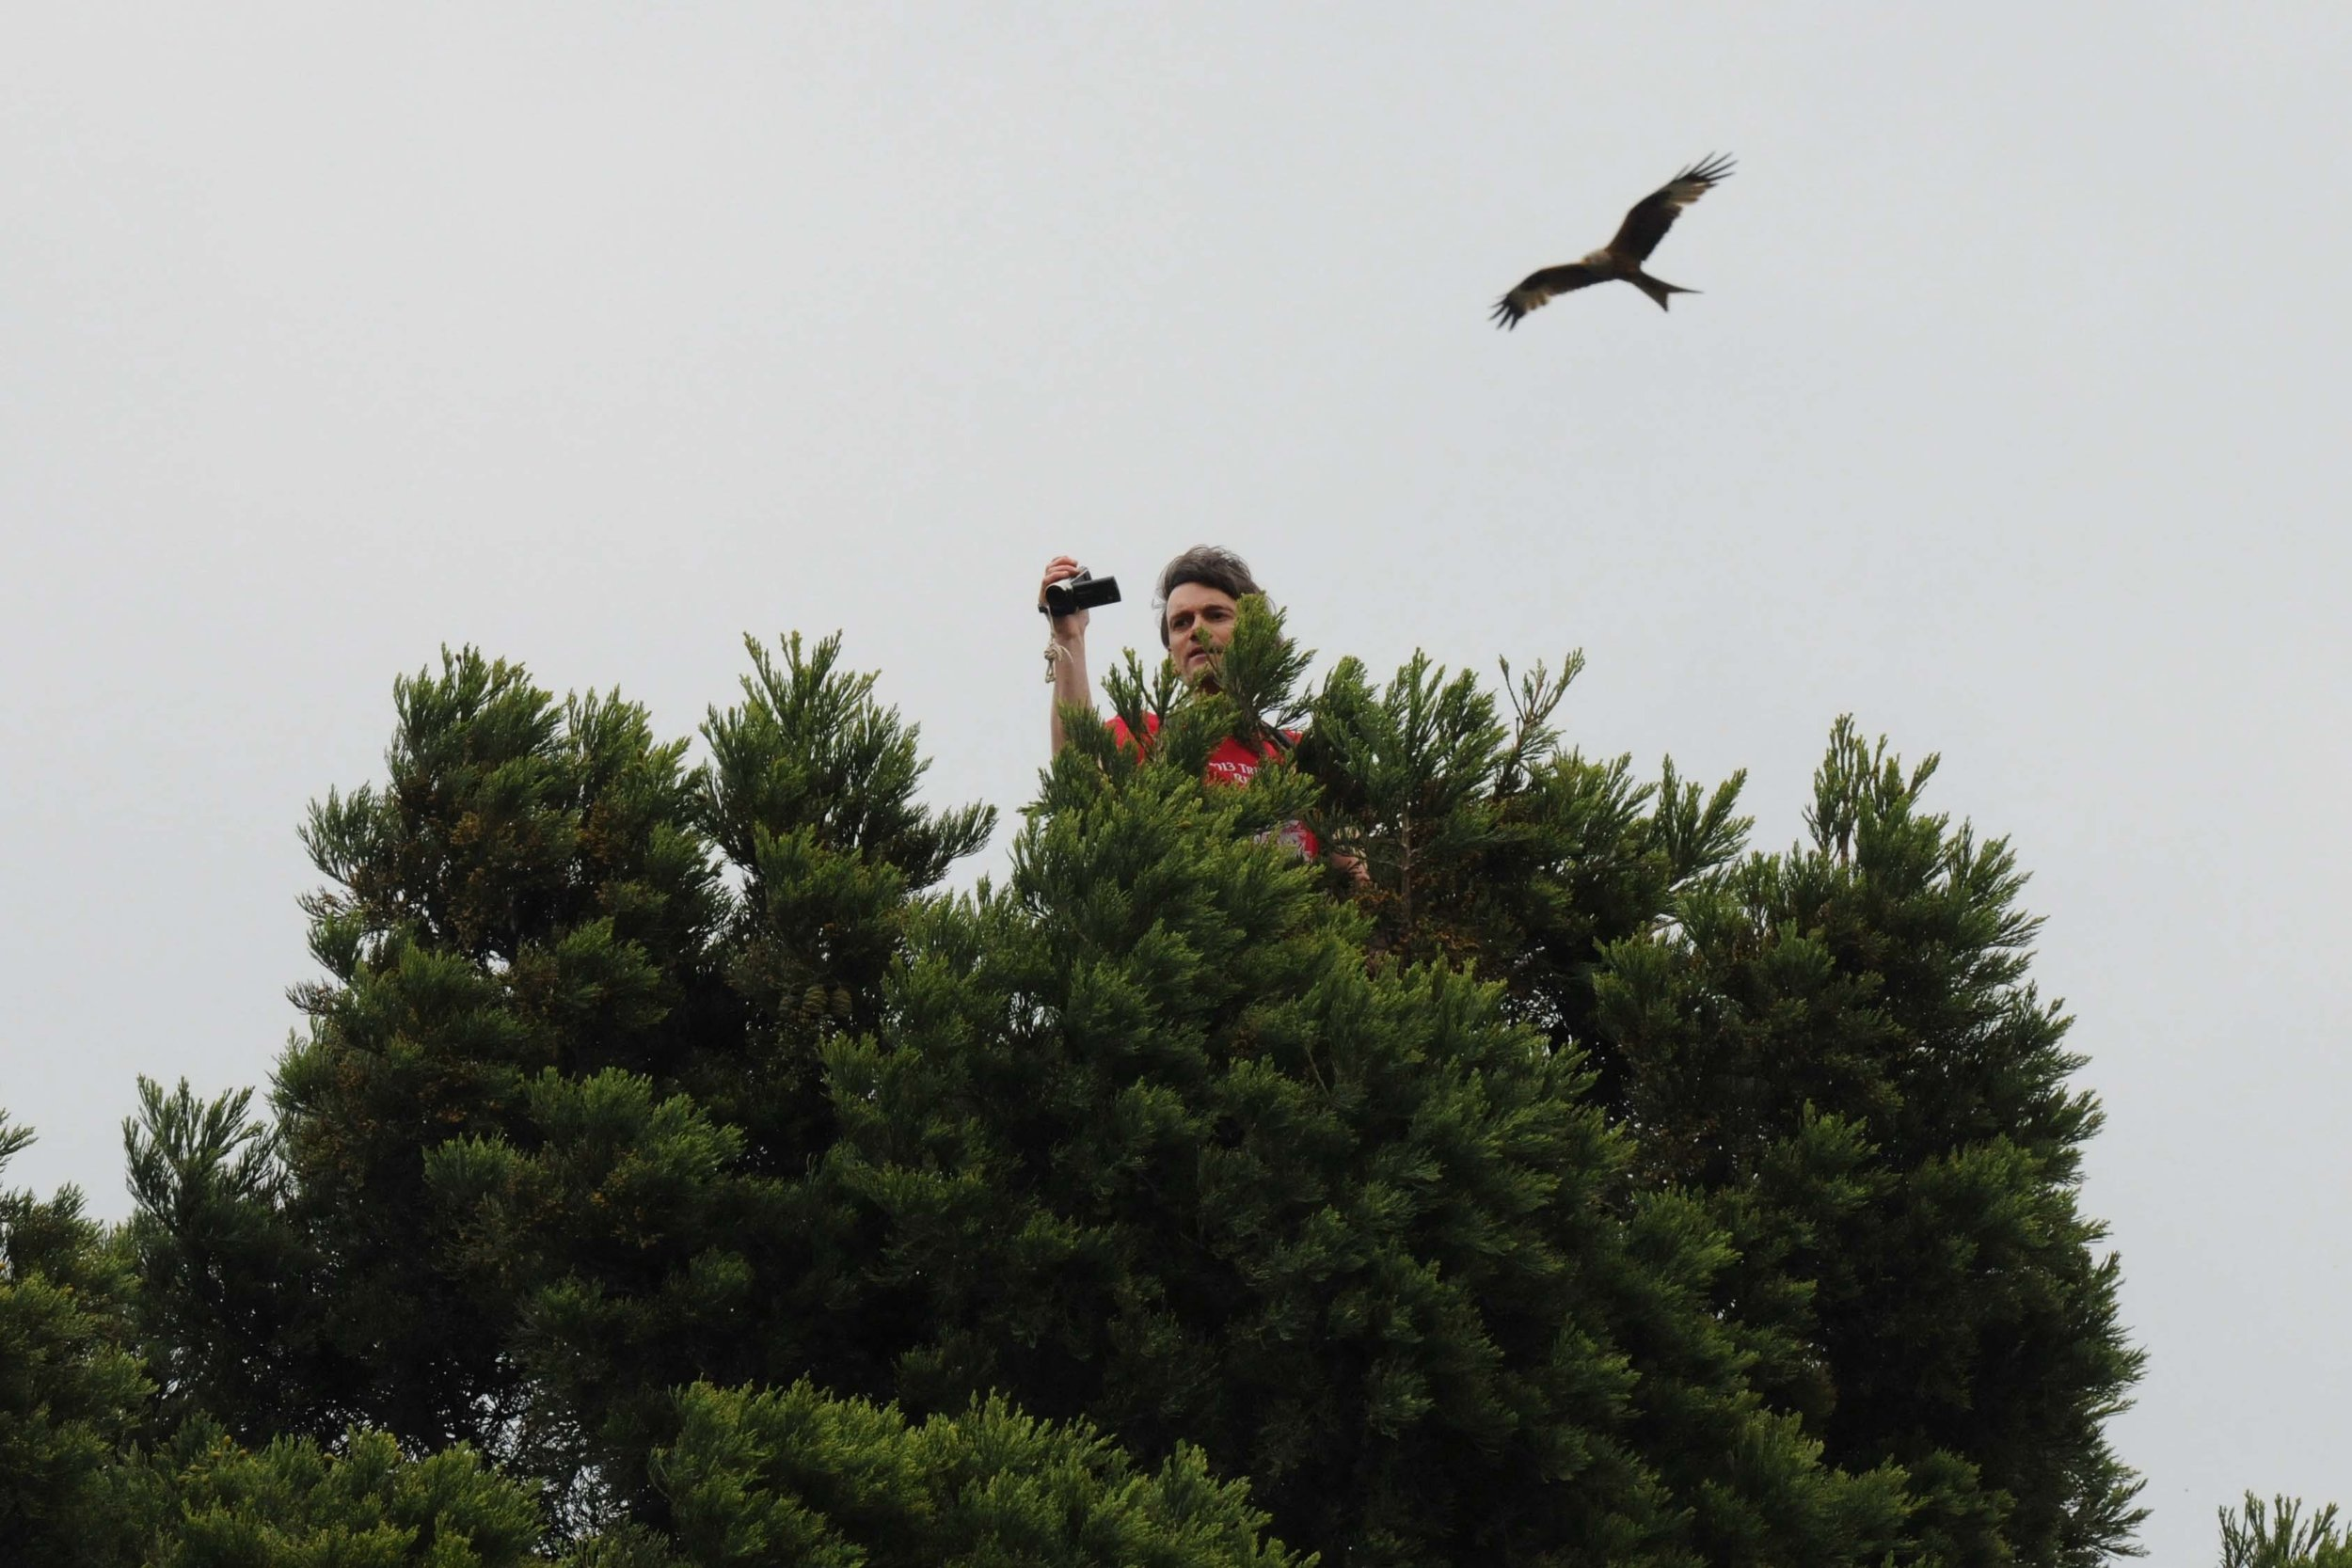 Michael filimng from the top of the Sequoia, watched by a Red Kite 2.jpg